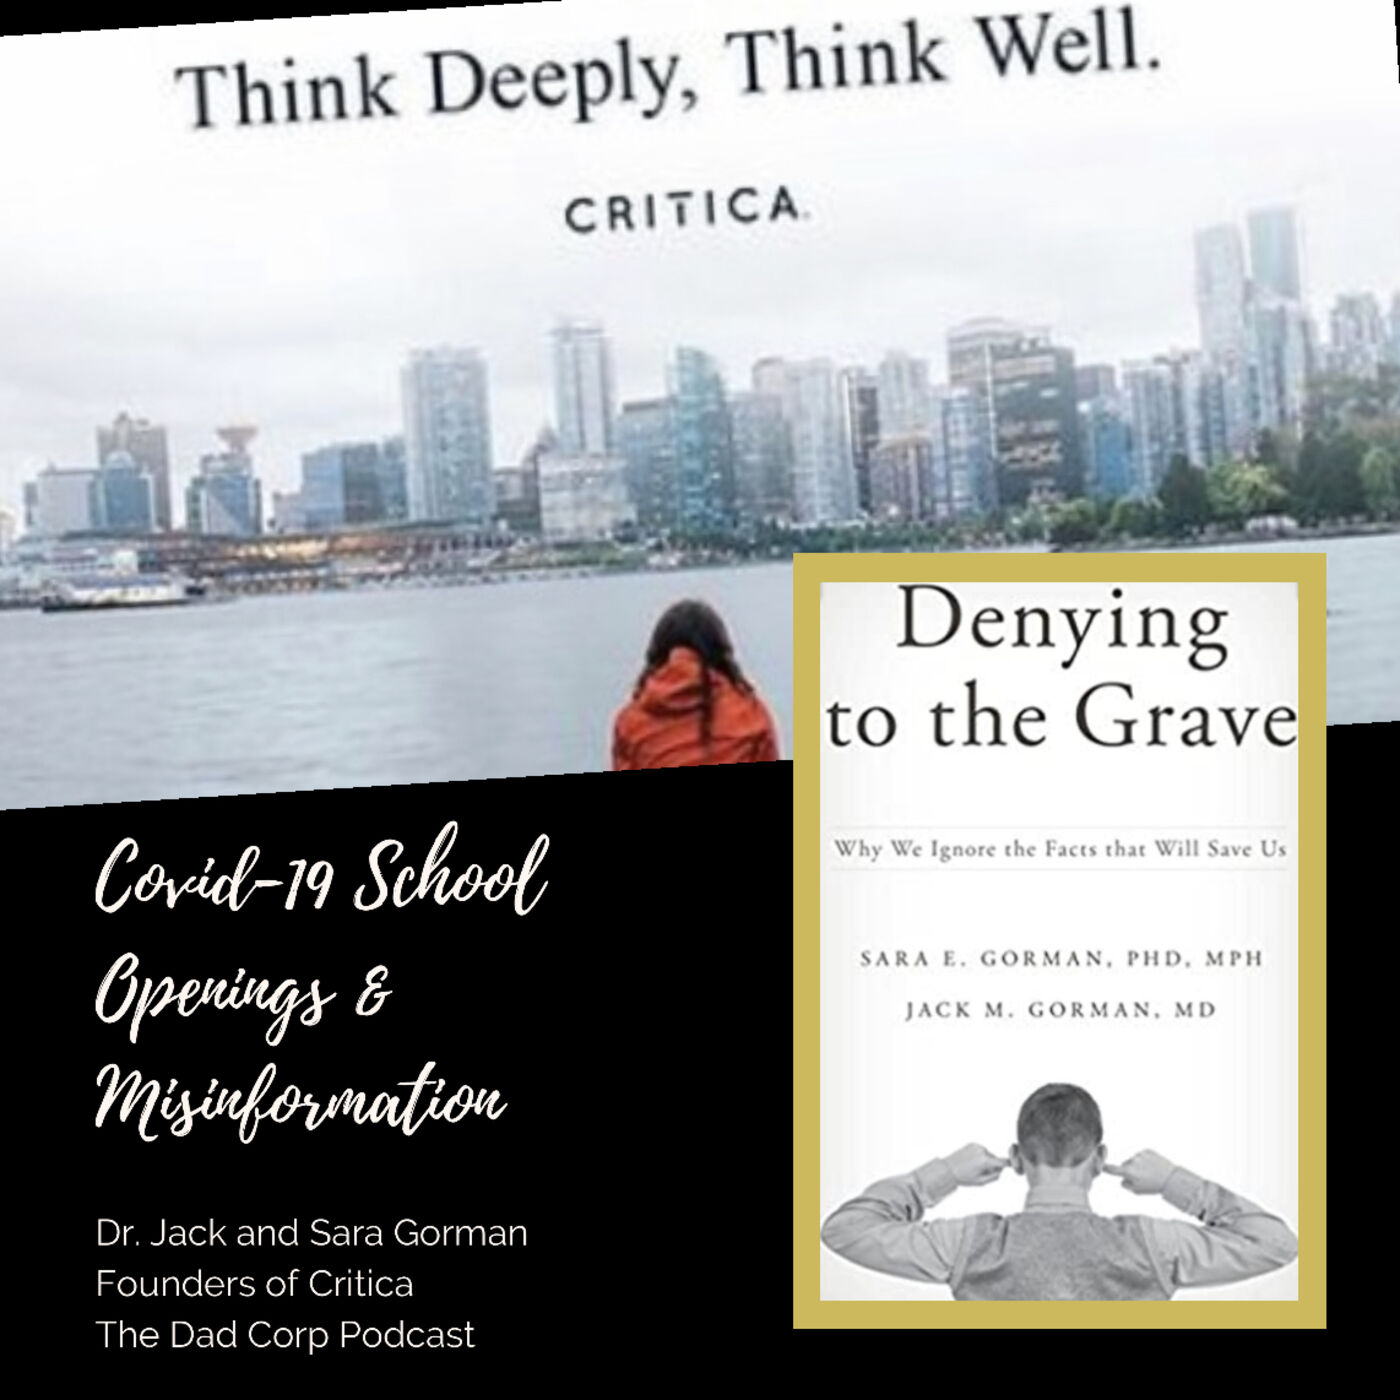 The Scientific Method, COVID-19 School Opening Guidelines and Misinformation with Drs. Jack and Sara Gorman, Founders of Critica